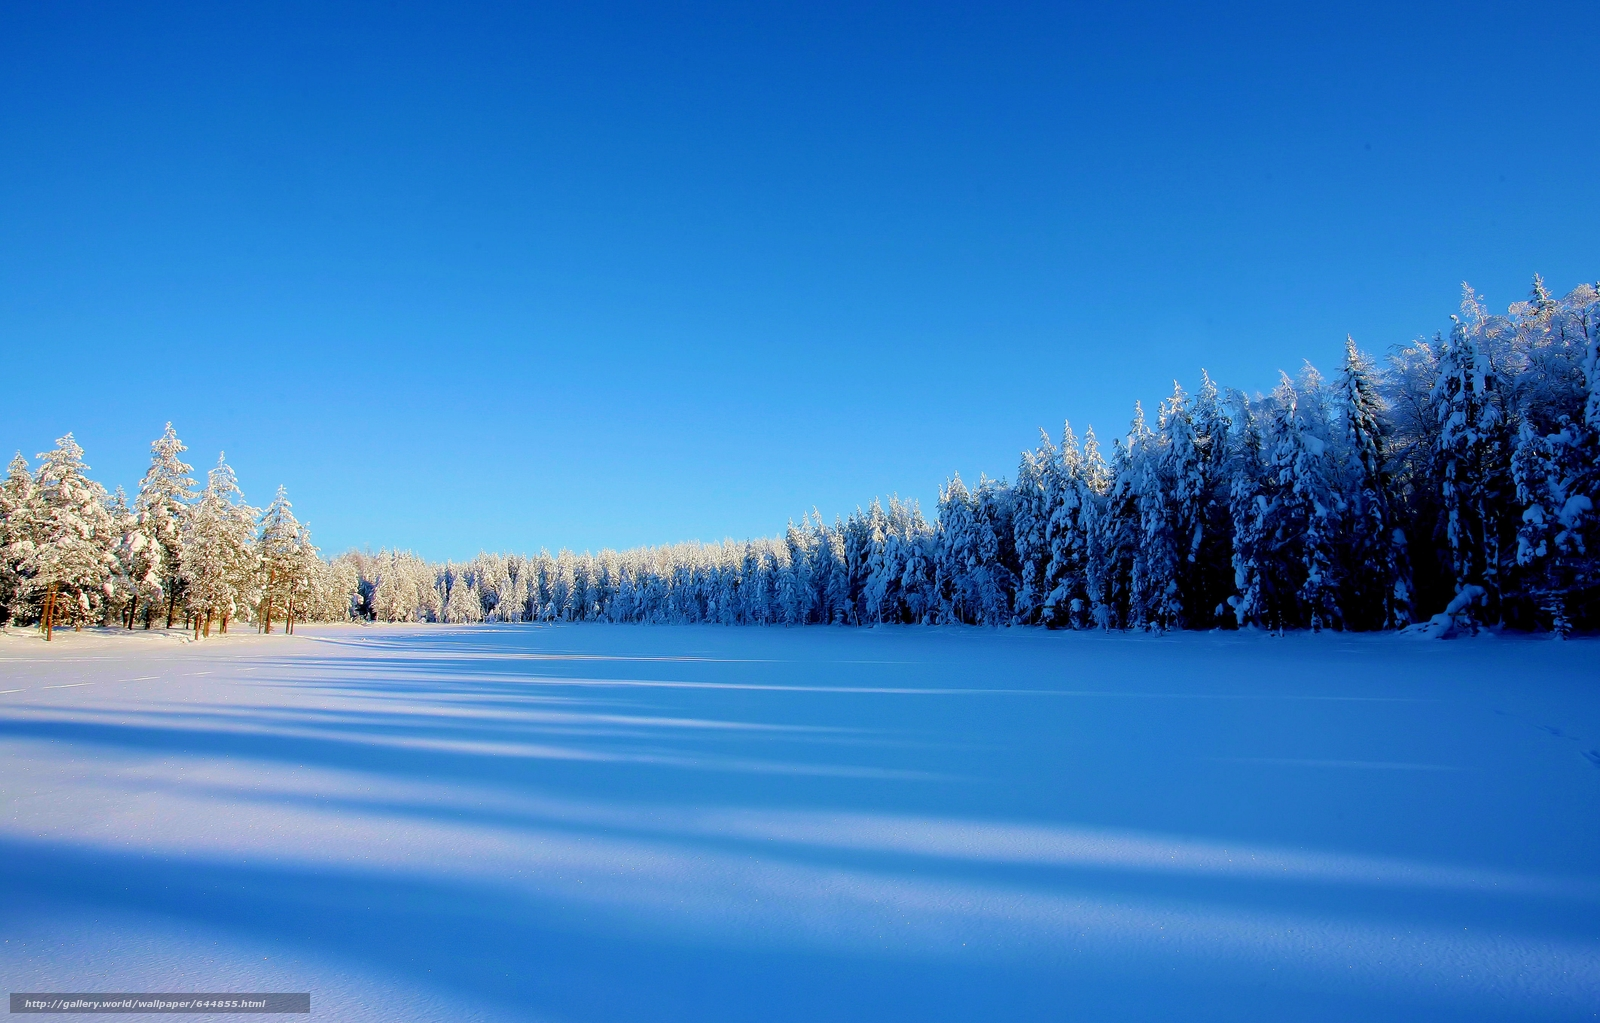 Download wallpaper winter,  snow,  trees,  drifts free desktop wallpaper in the resolution 4196x2682 — picture №644855